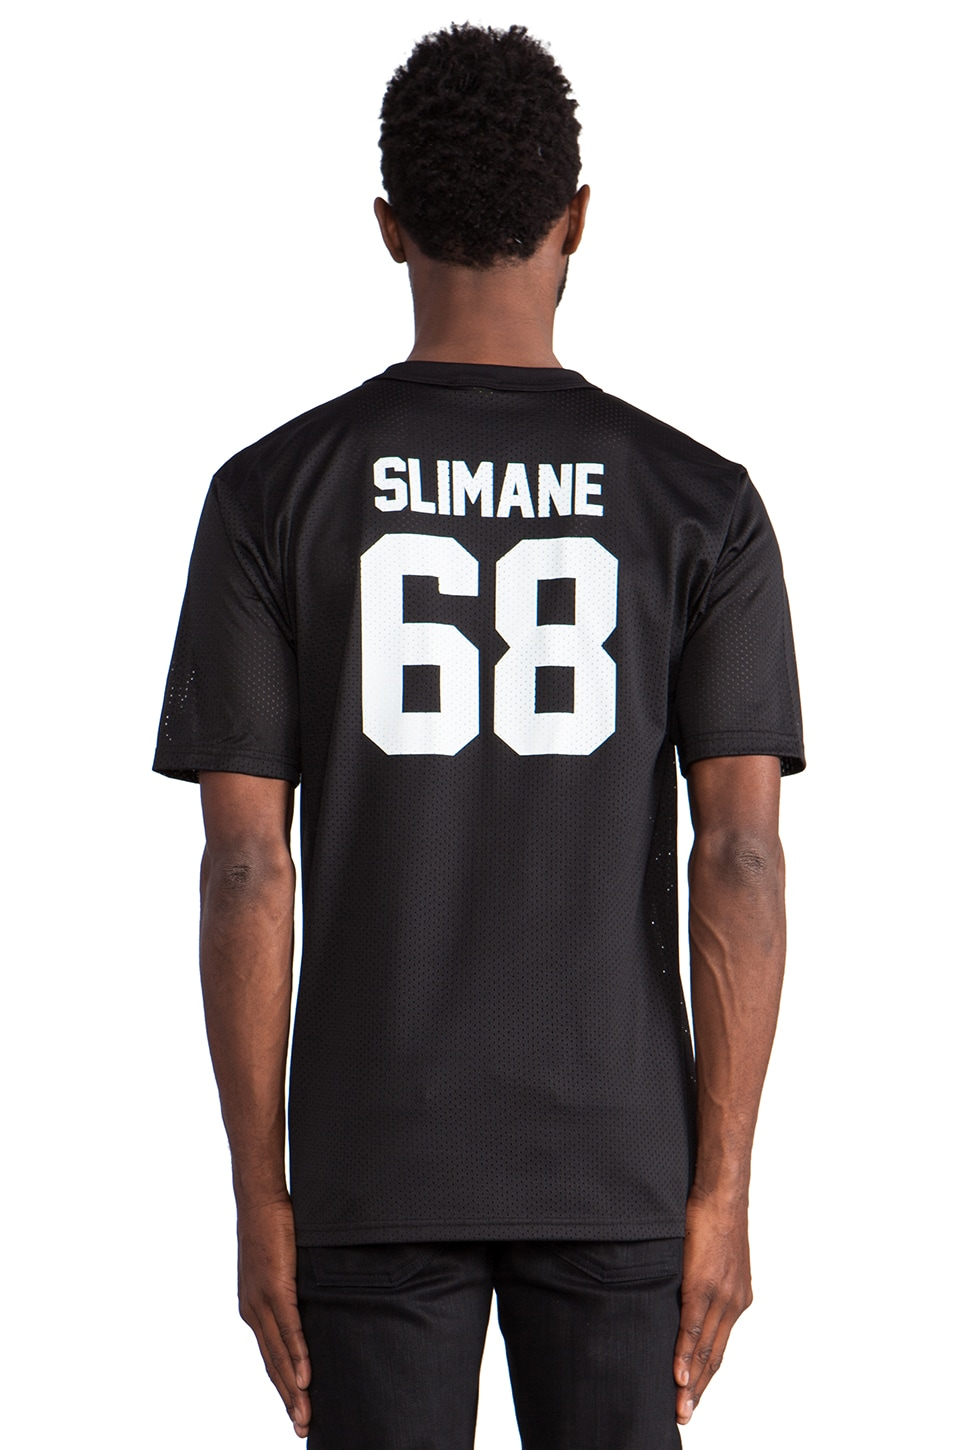 LPD New York Slimane Mesh Jersey with White Print in Black